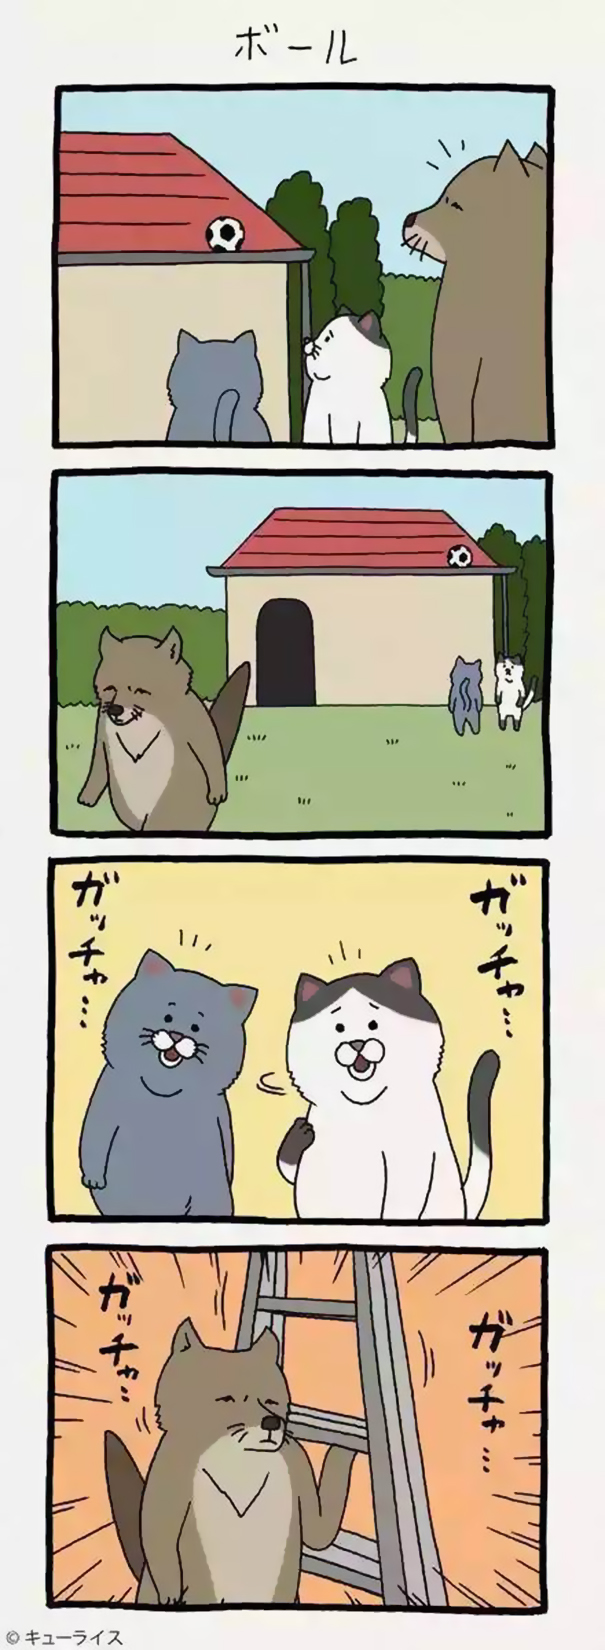 Dog-cartoon-comics-qrais-japan